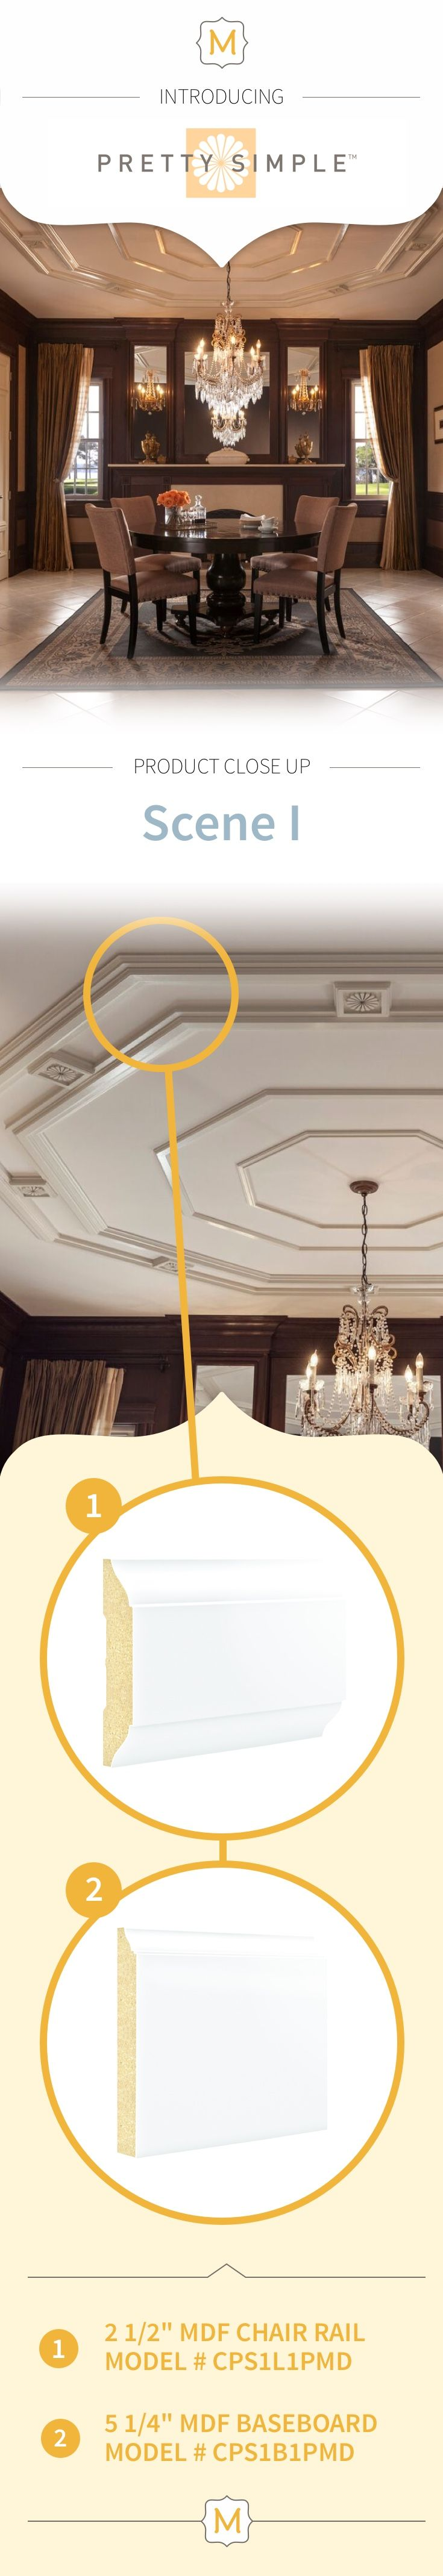 Make your chandelier pop with moulding elements from Metrie's Pretty Simple Collection.